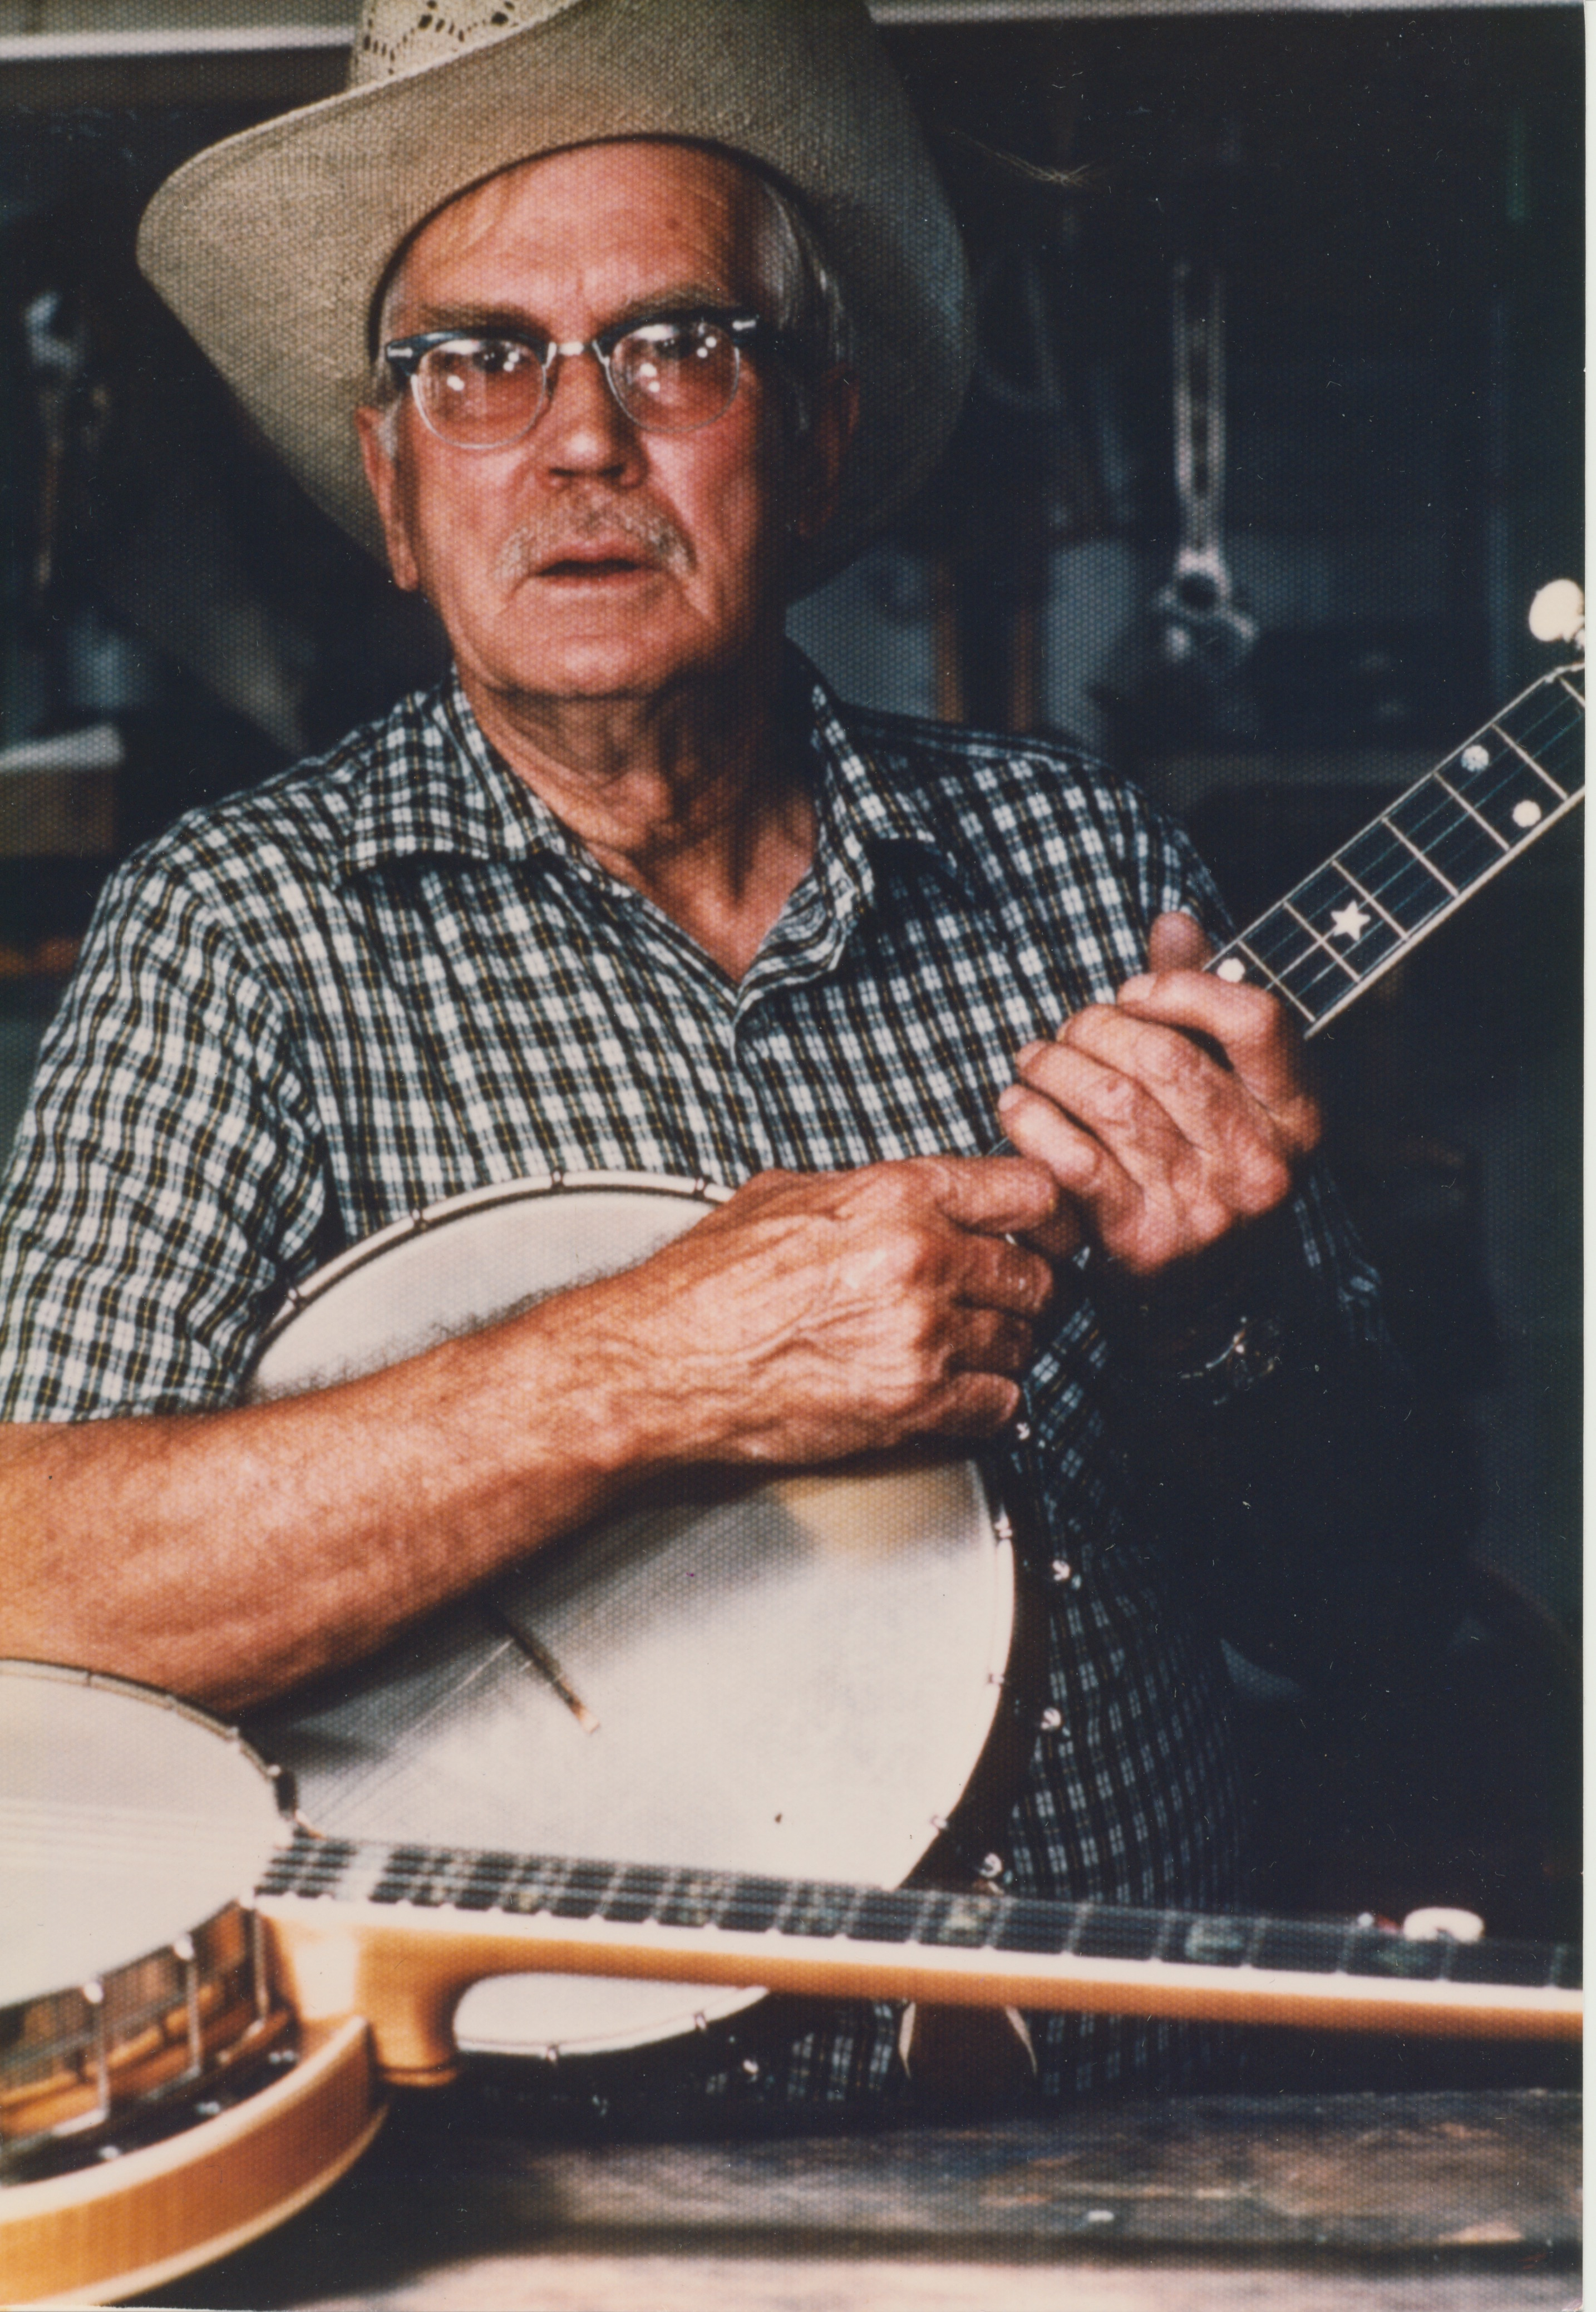 Caption: Kyle Creed was an influential banjo picker, luthier, fiddler and record producer in the Blue Ridge.  We feature him this week with two of his best fiddle tunes – Roscoe and Alabama Gals, both performed with the Camp Creek Boys, including Bobby Patterson o, Credit: Paul Brown